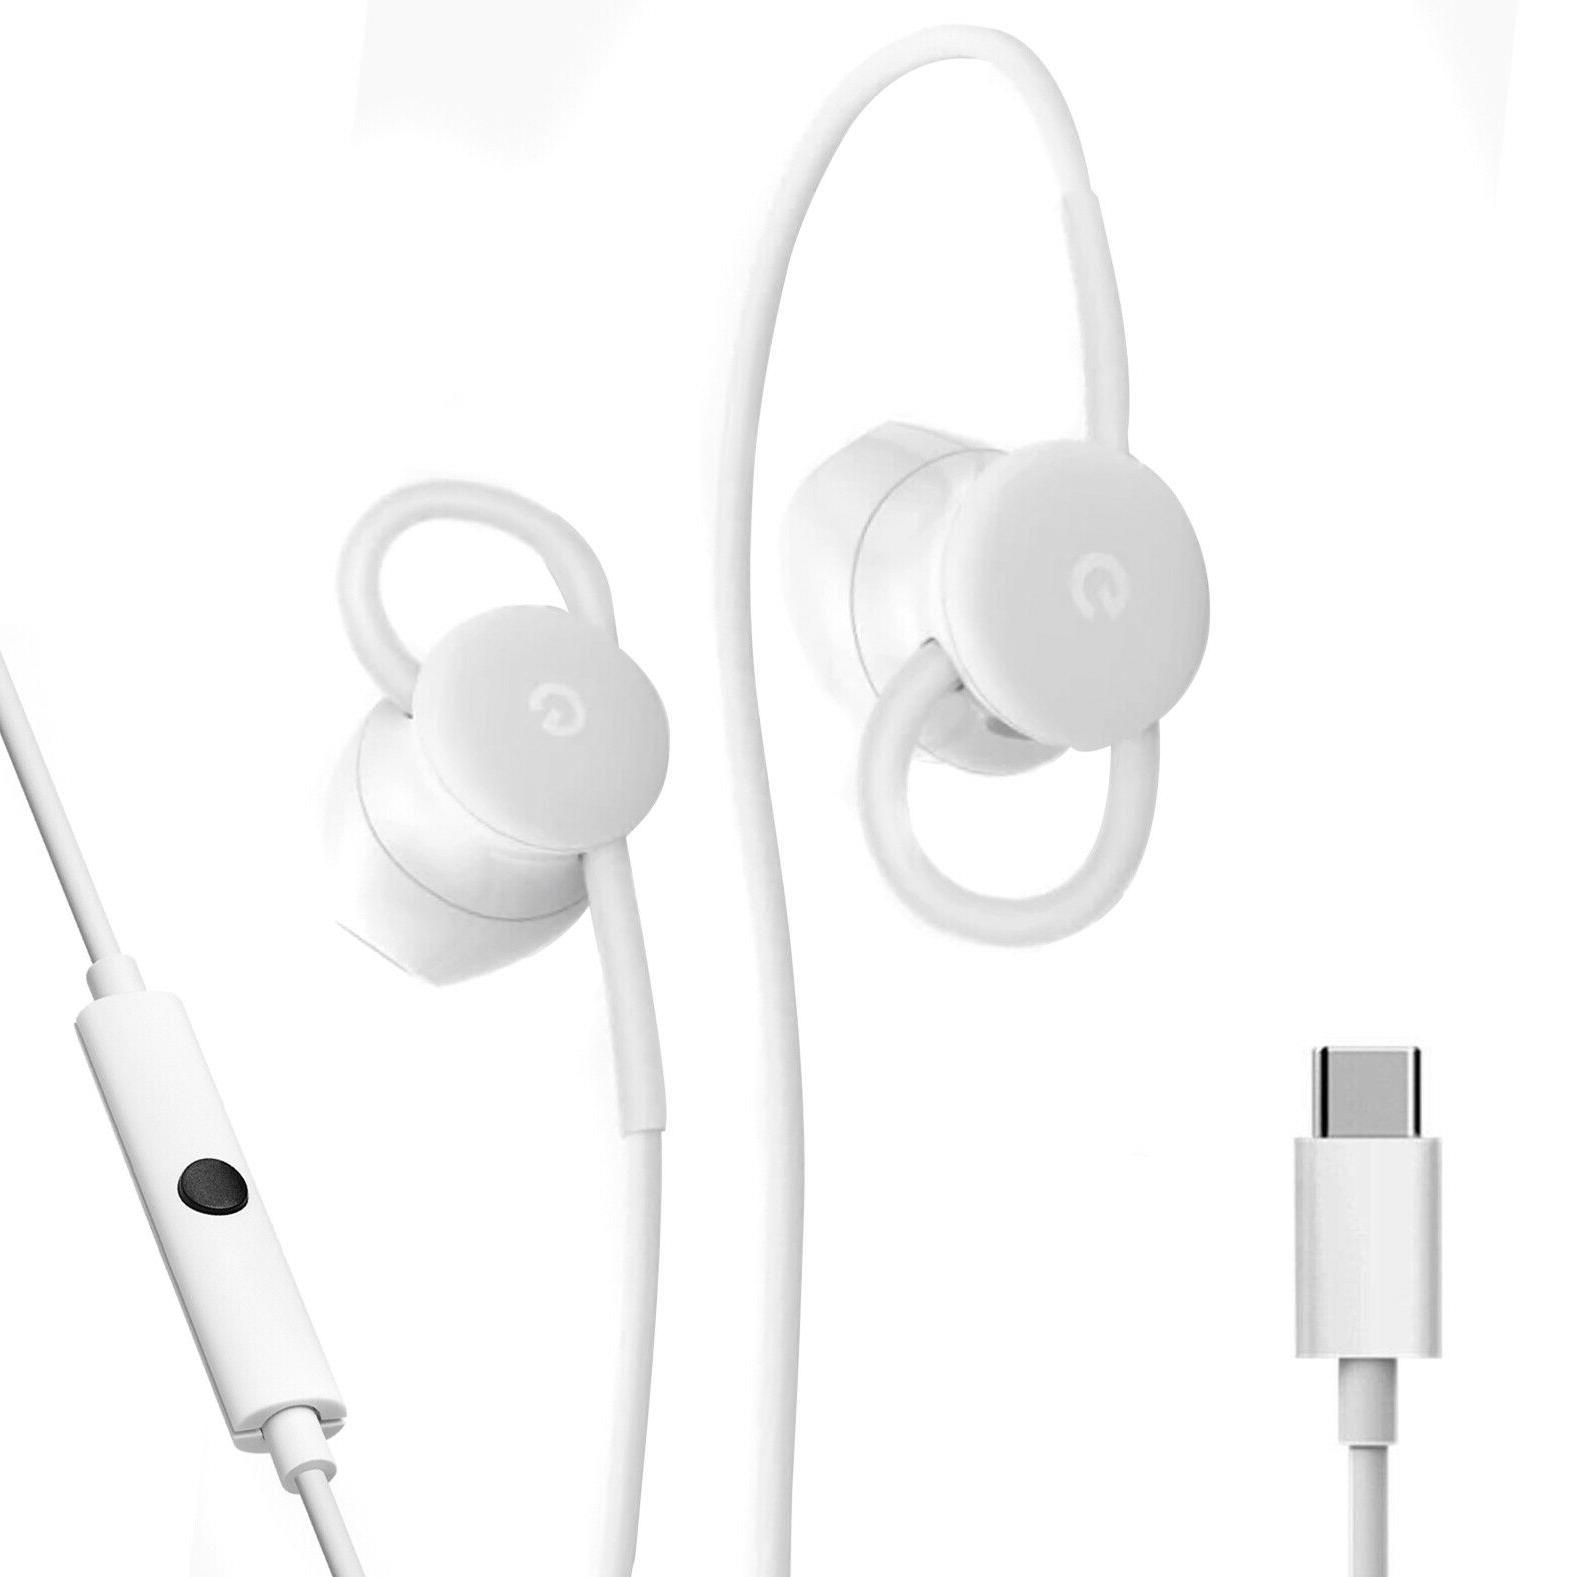 Google Earbuds, to Adapter - Accessory Kit